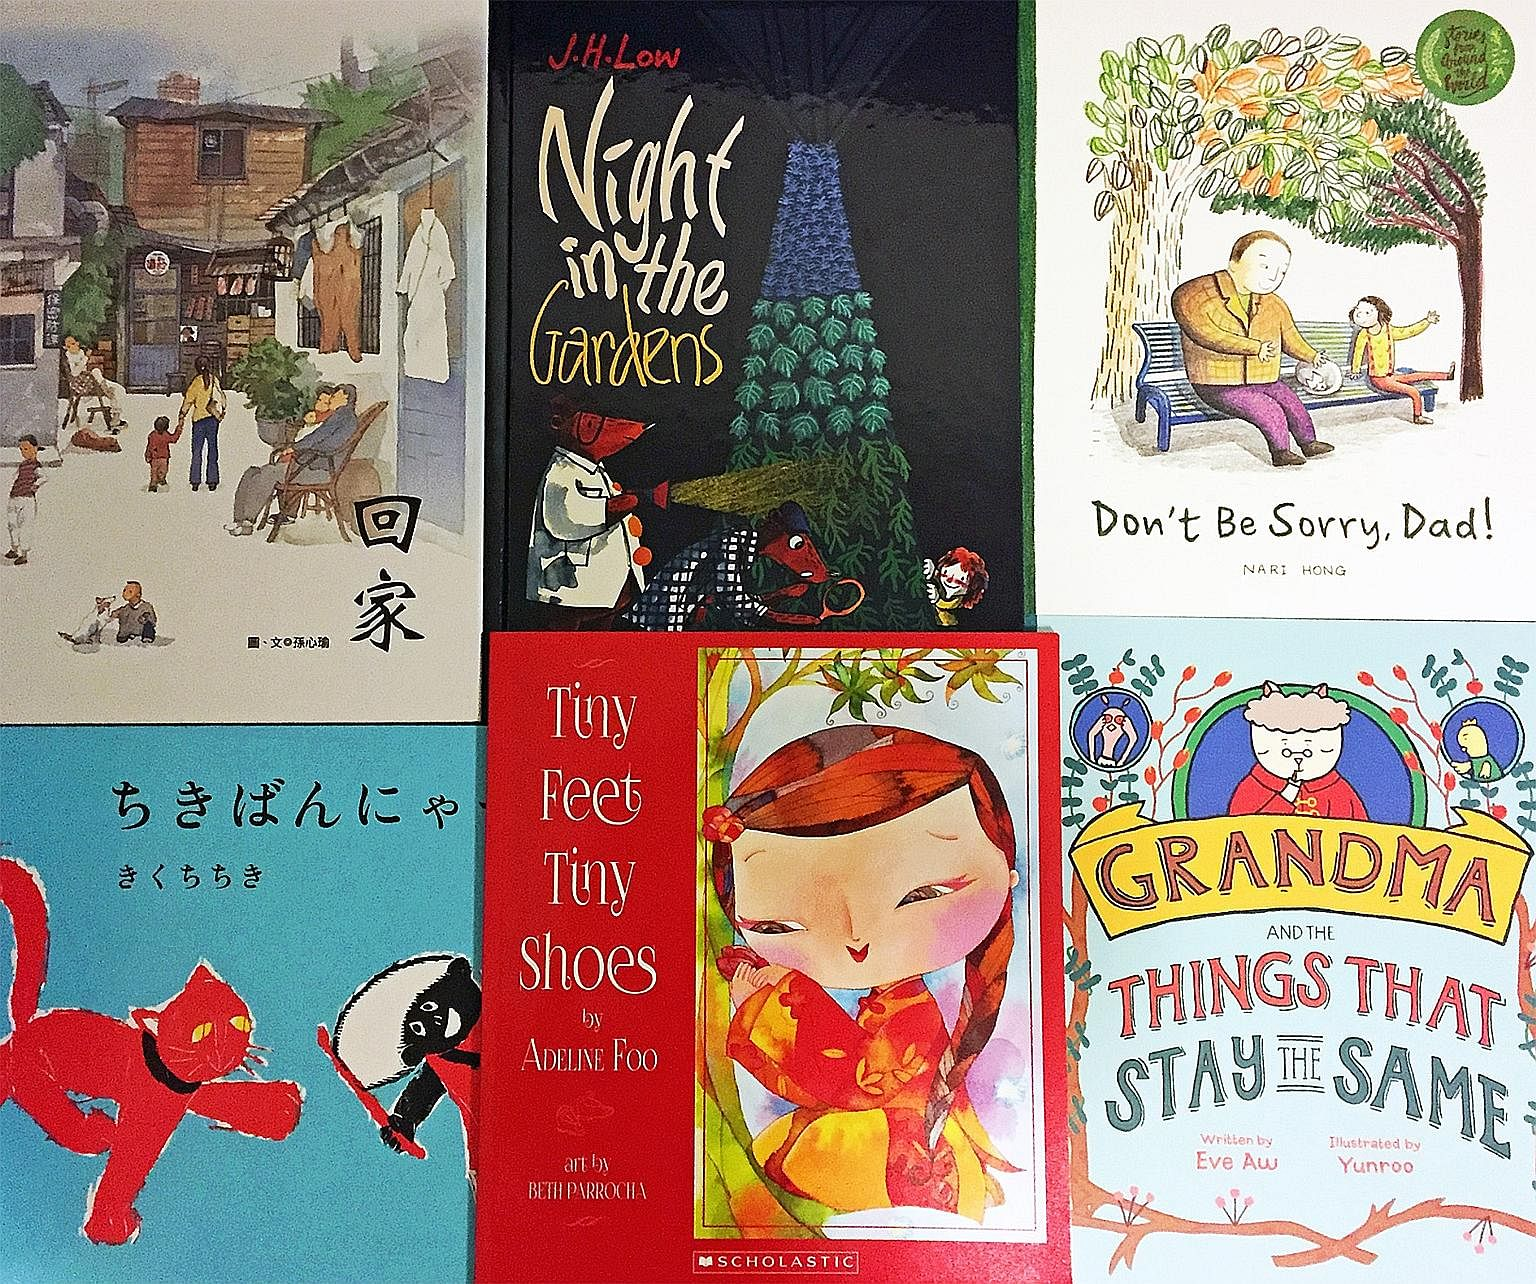 Shortlisted for the award are (clockwise from top left) Home by Sun Hsin-yu; Night In The Gardens by J.H. Low; Don't Be Sorry, Dad! by Nari Hong; Grandma And The Things That Stay The Same by Eve Aw and Tan Yun Ru; Tiny Feet, Tiny Shoes by Adeline Foo